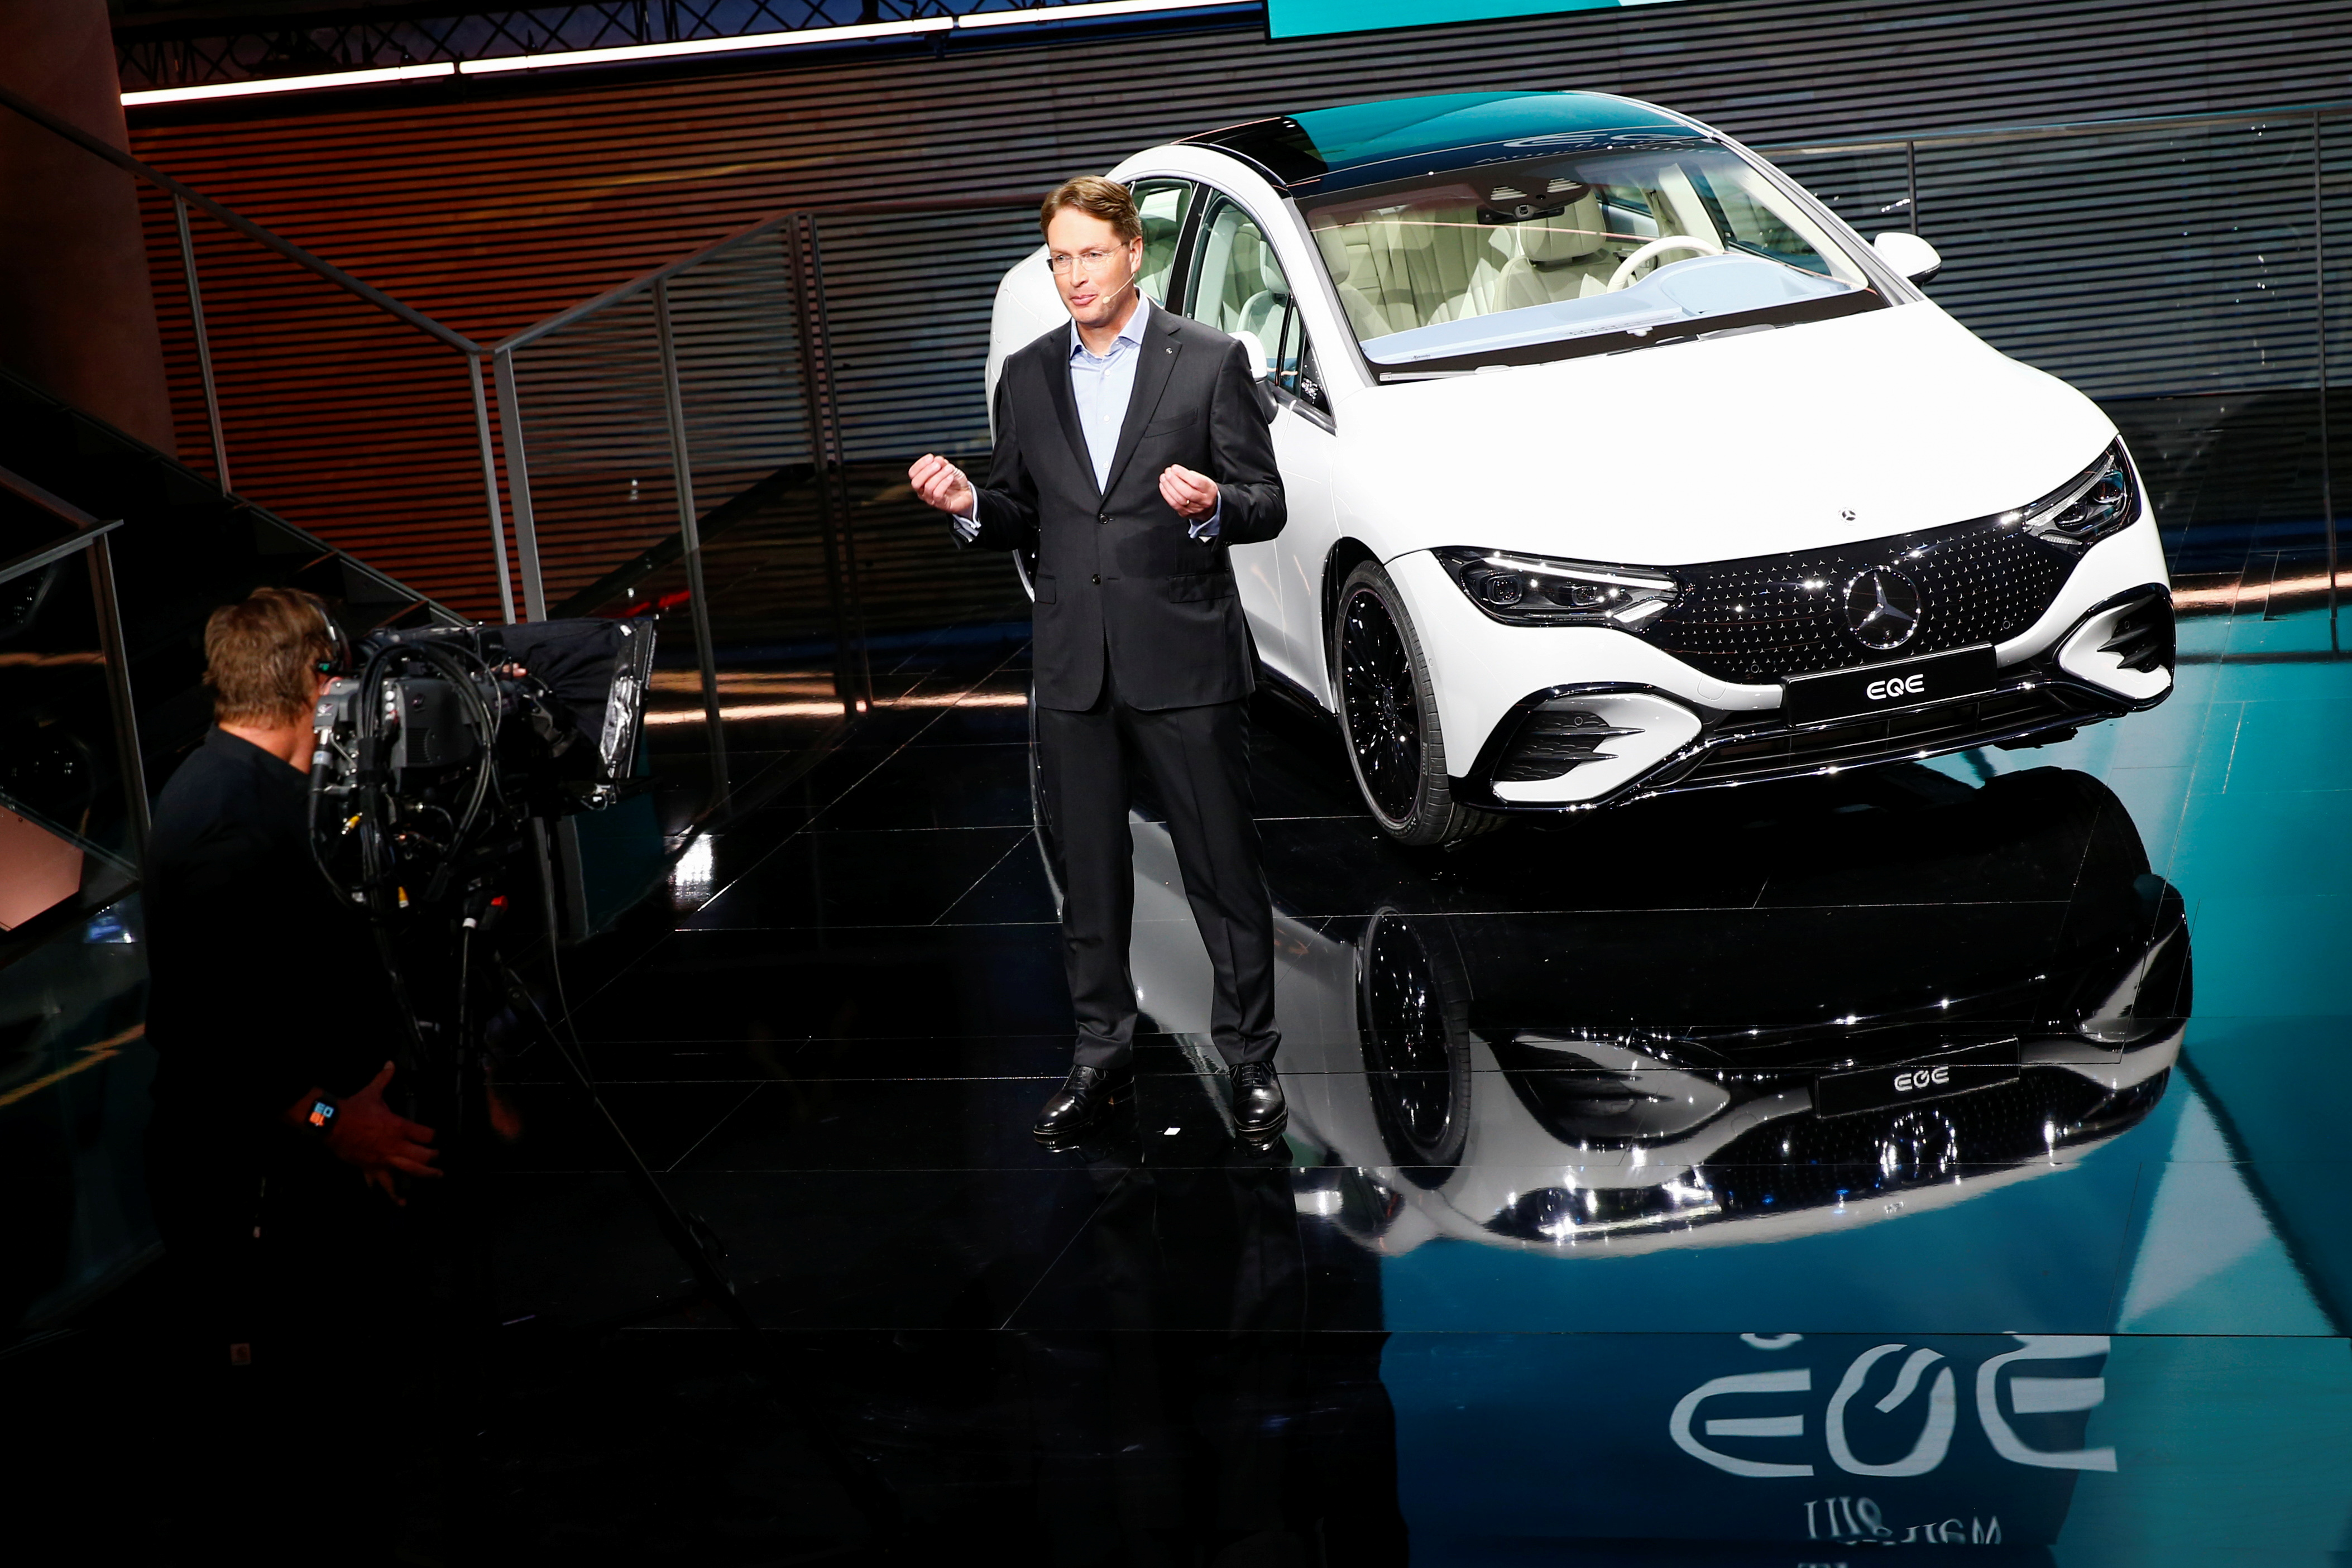 Ola Kaellenius, chairman of Daimler AG, speaks during the presentation of the EQE ahead of the Munich Motor Show IAA Mobility 2021 in Munich, Germany, September 5, 2021. REUTERS/Michaela Rehle